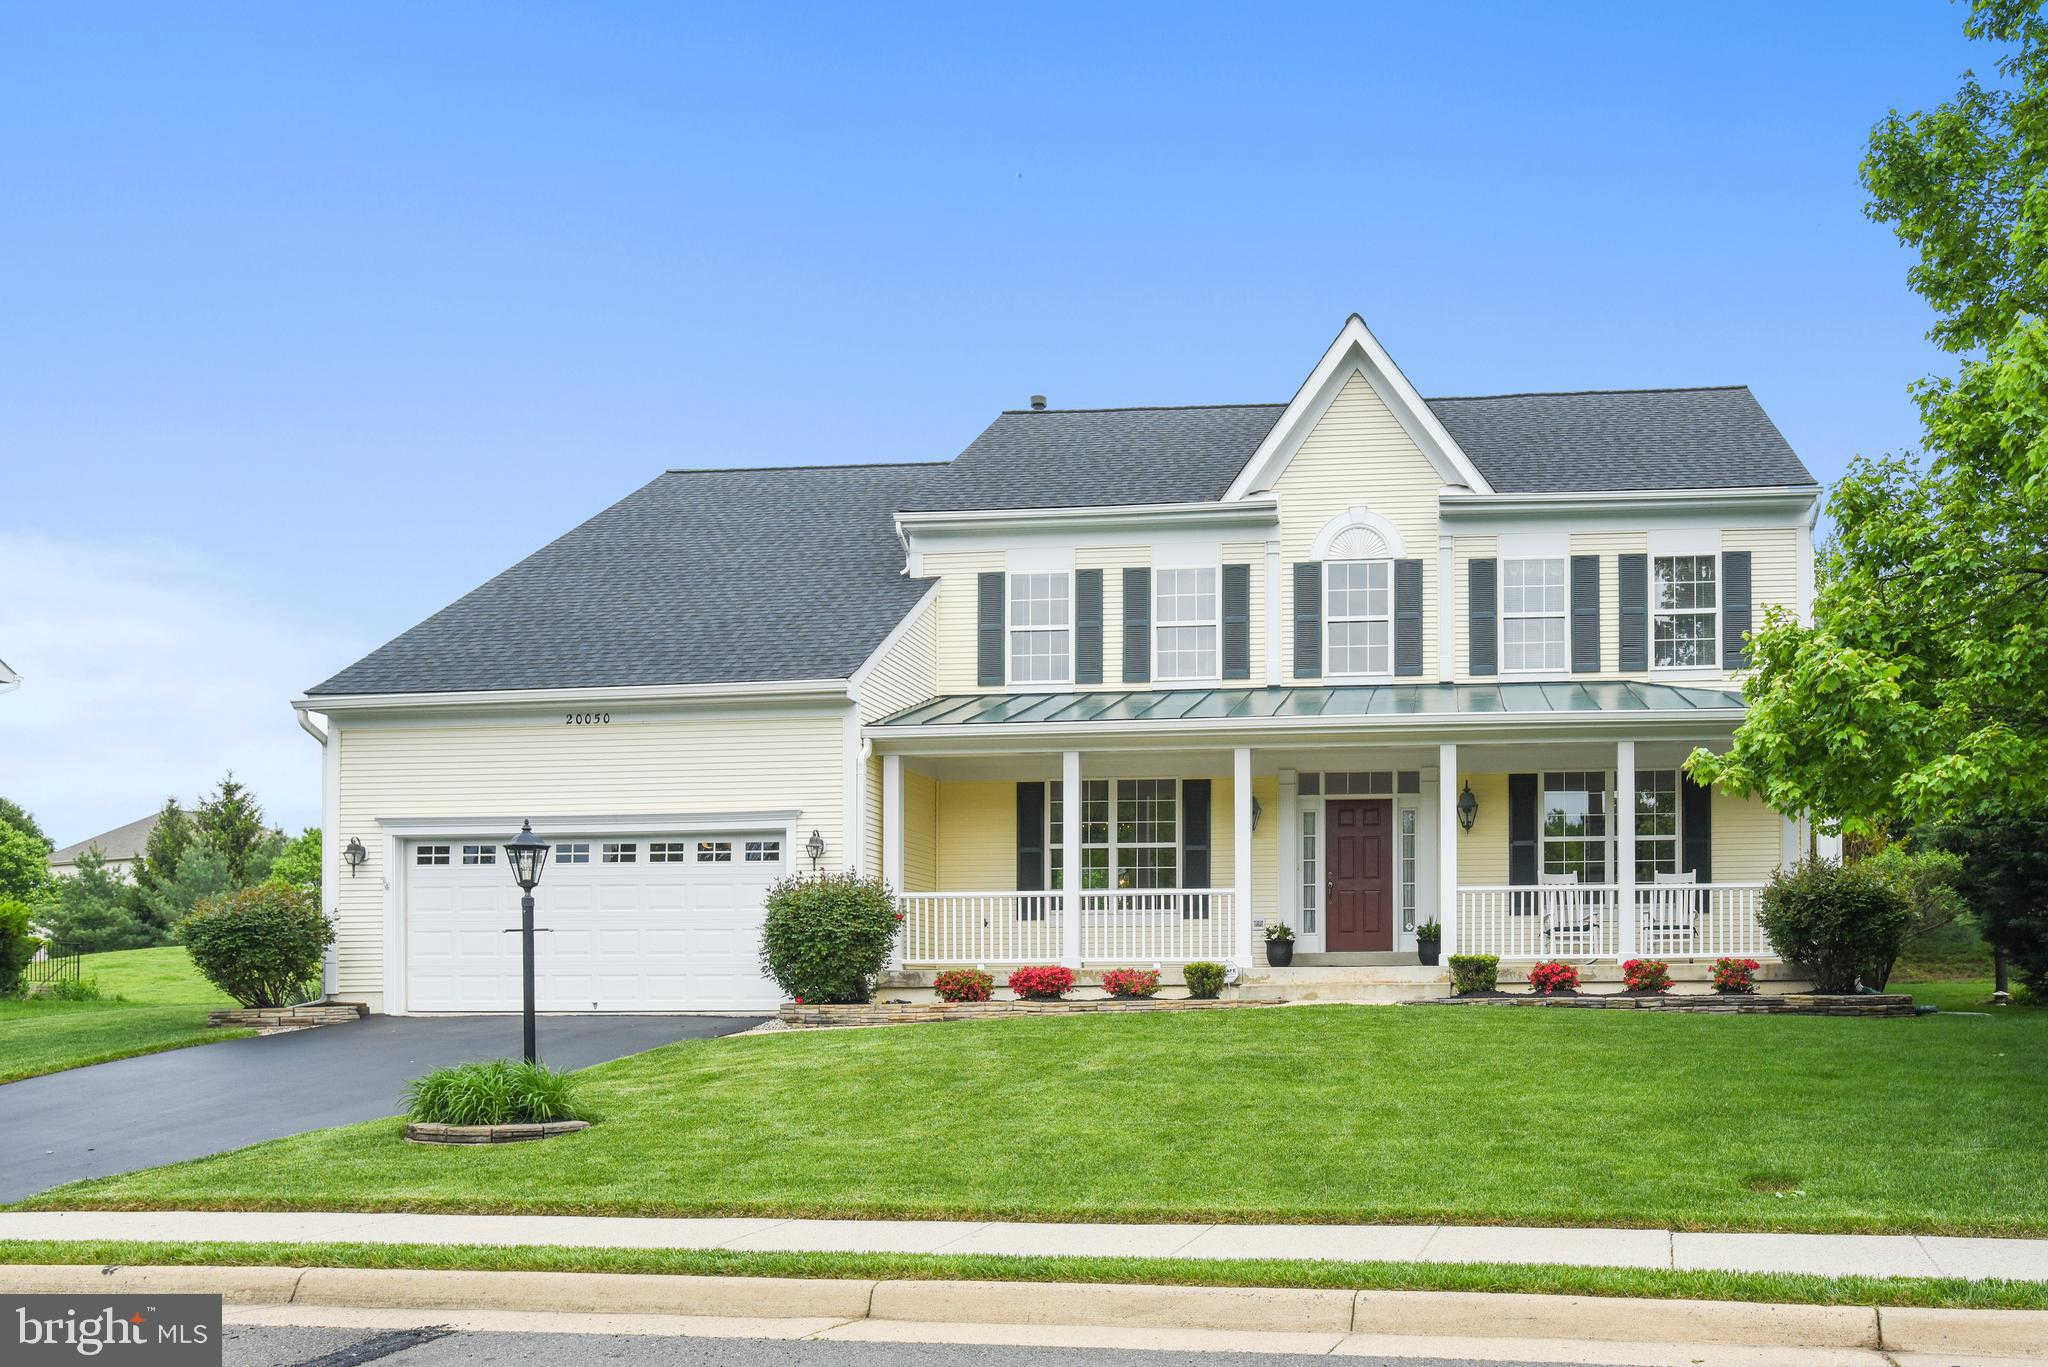 20050 Alexandras Grove Drive, Ashburn, VA 20147 is now new to the market!